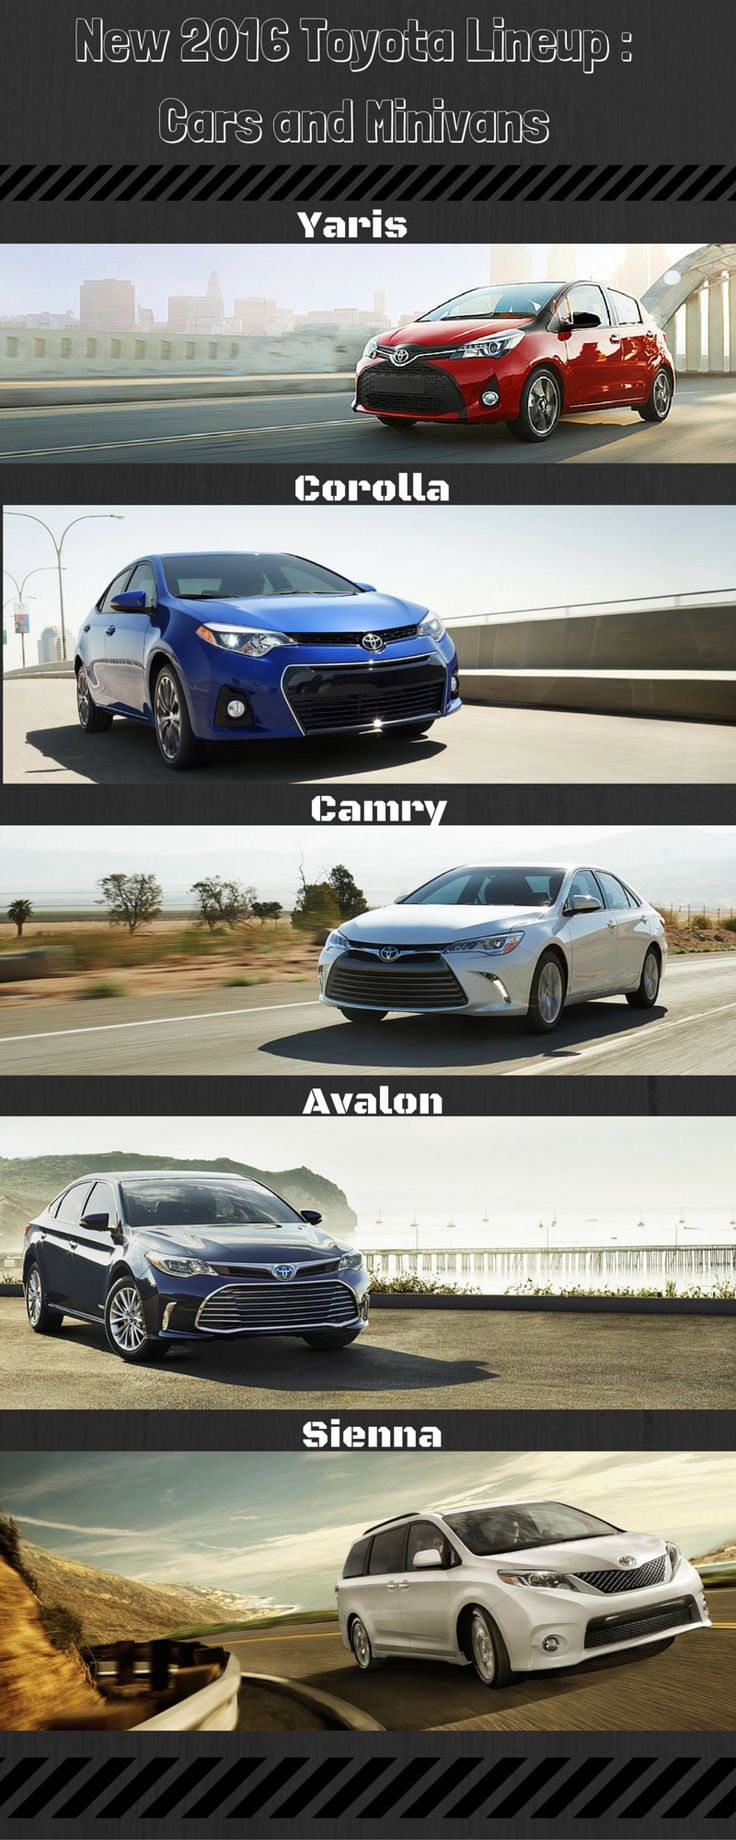 The new 2016 Toyota Lineup: Cars and Minivans! http://www.lakesidetoyota.com/